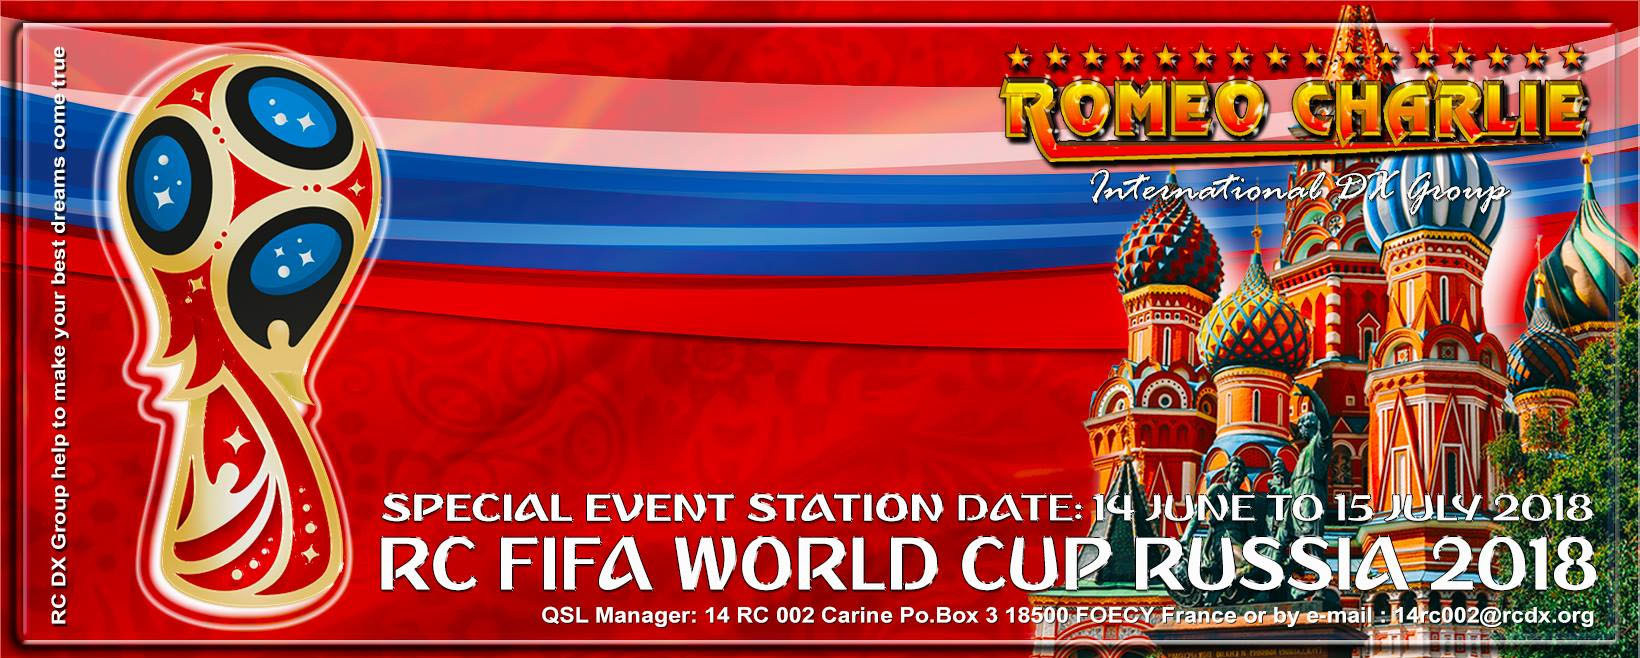 rc wc banner